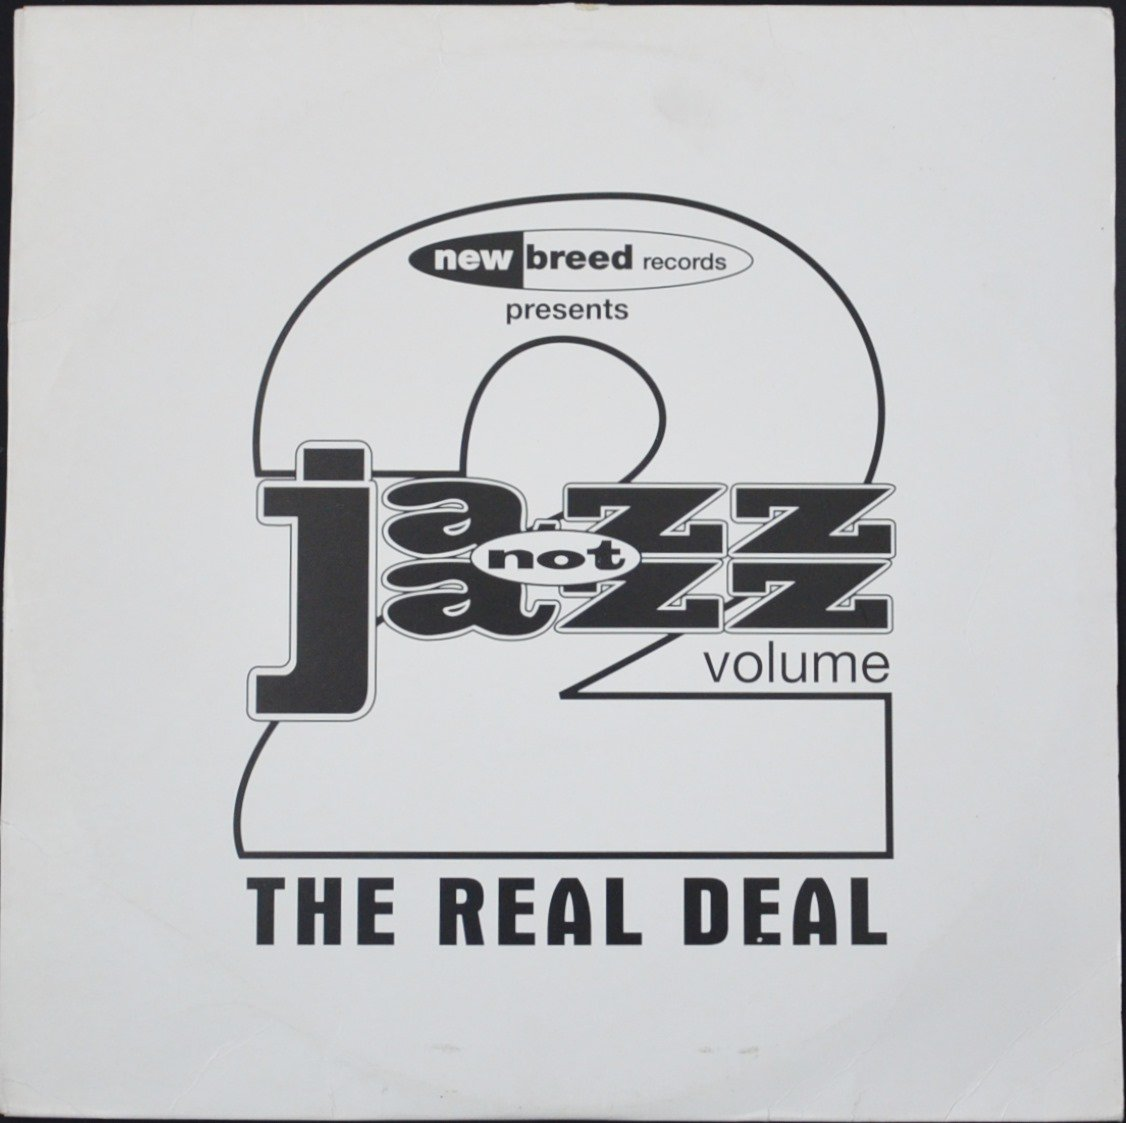 V.A. / NEW BREED RECORDS PRESENTS JAZZ NOT JAZZ VOLUME 2 - THE REAL DEAL (12